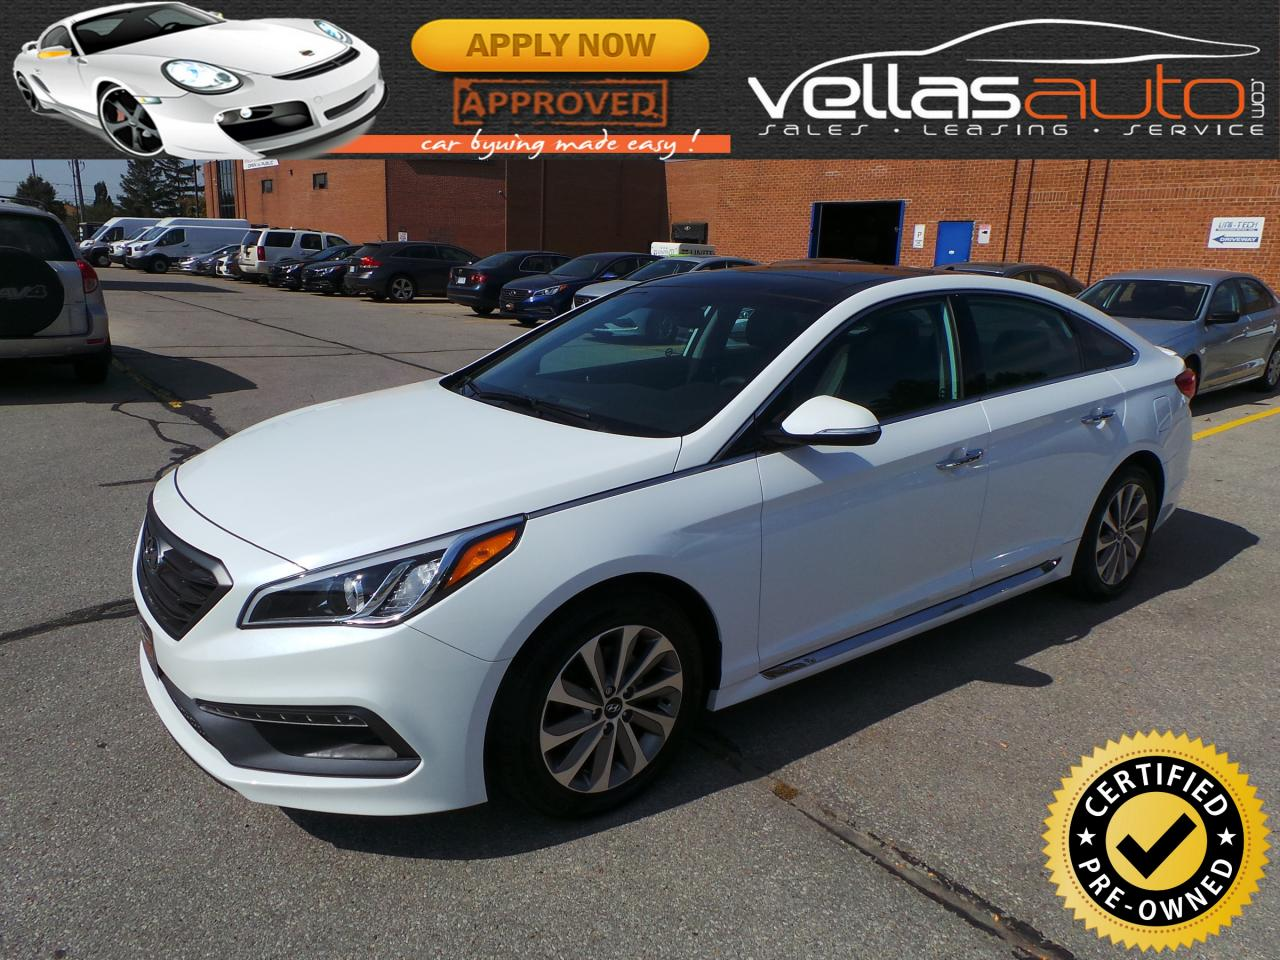 sonata interior s mills catonsville owings md hyundai used under sale ltd for the htm baltimore near hood